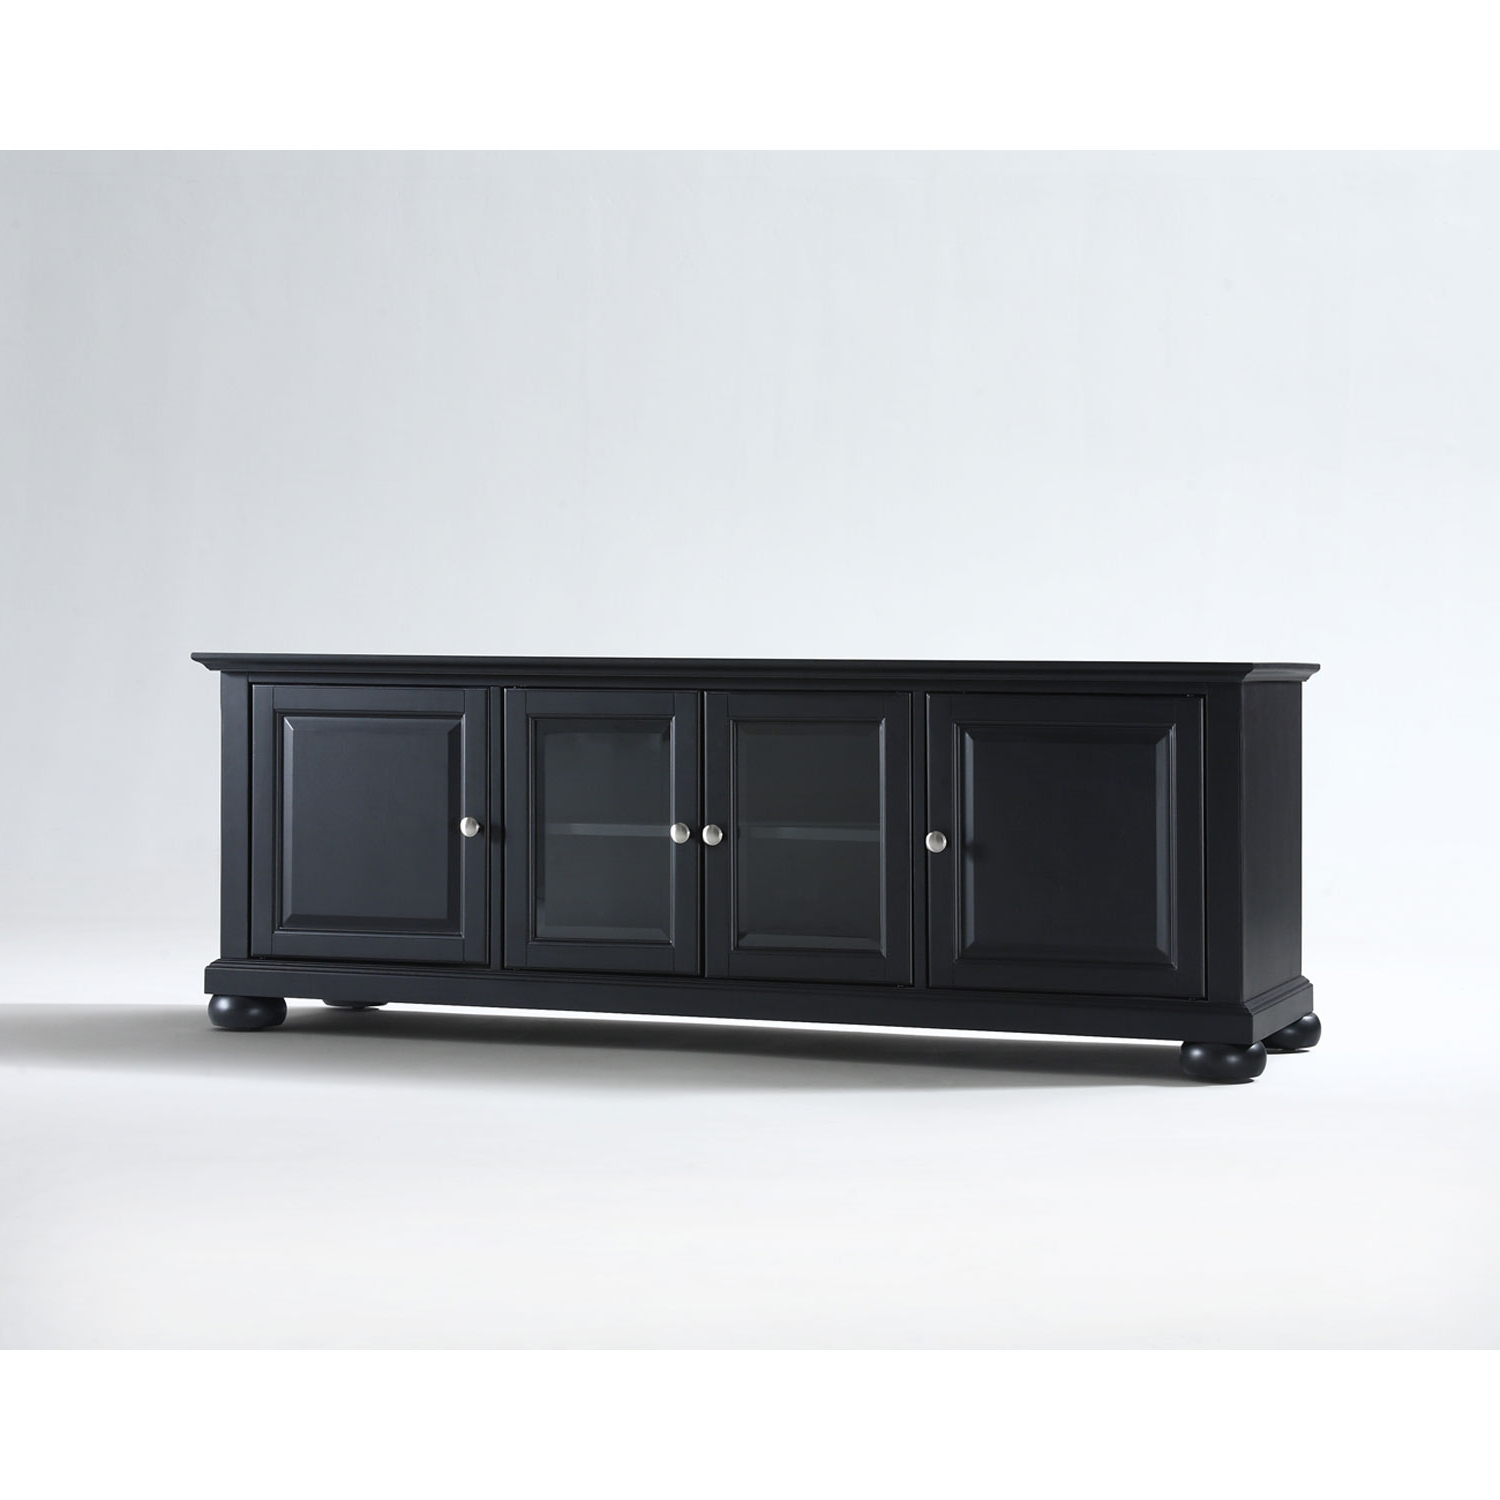 2017 Low Long Tv Stands Regarding Crosley Furniture Alexandria 60 Inch Low Profile Tv Stand In Black (Gallery 5 of 20)